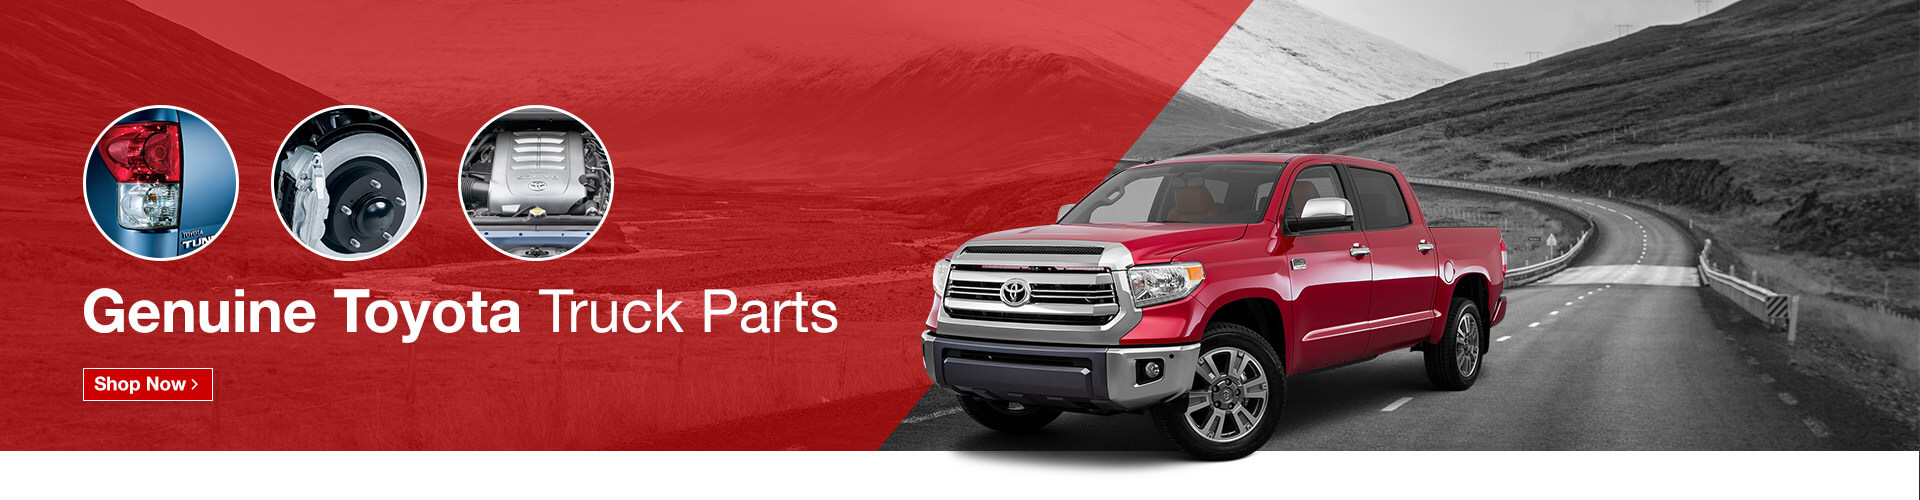 OEM Toyota Truck Parts